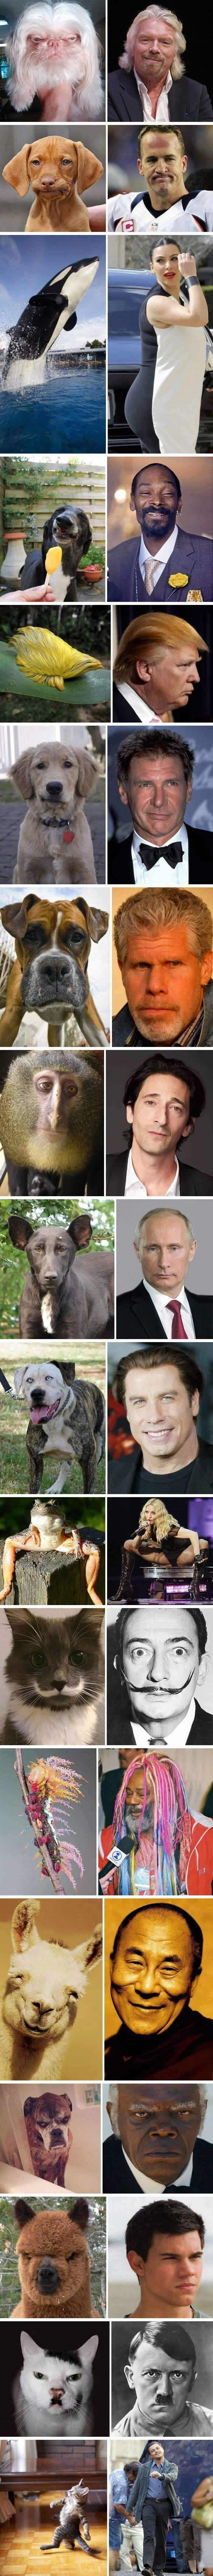 Celebs and their animal lookalikes